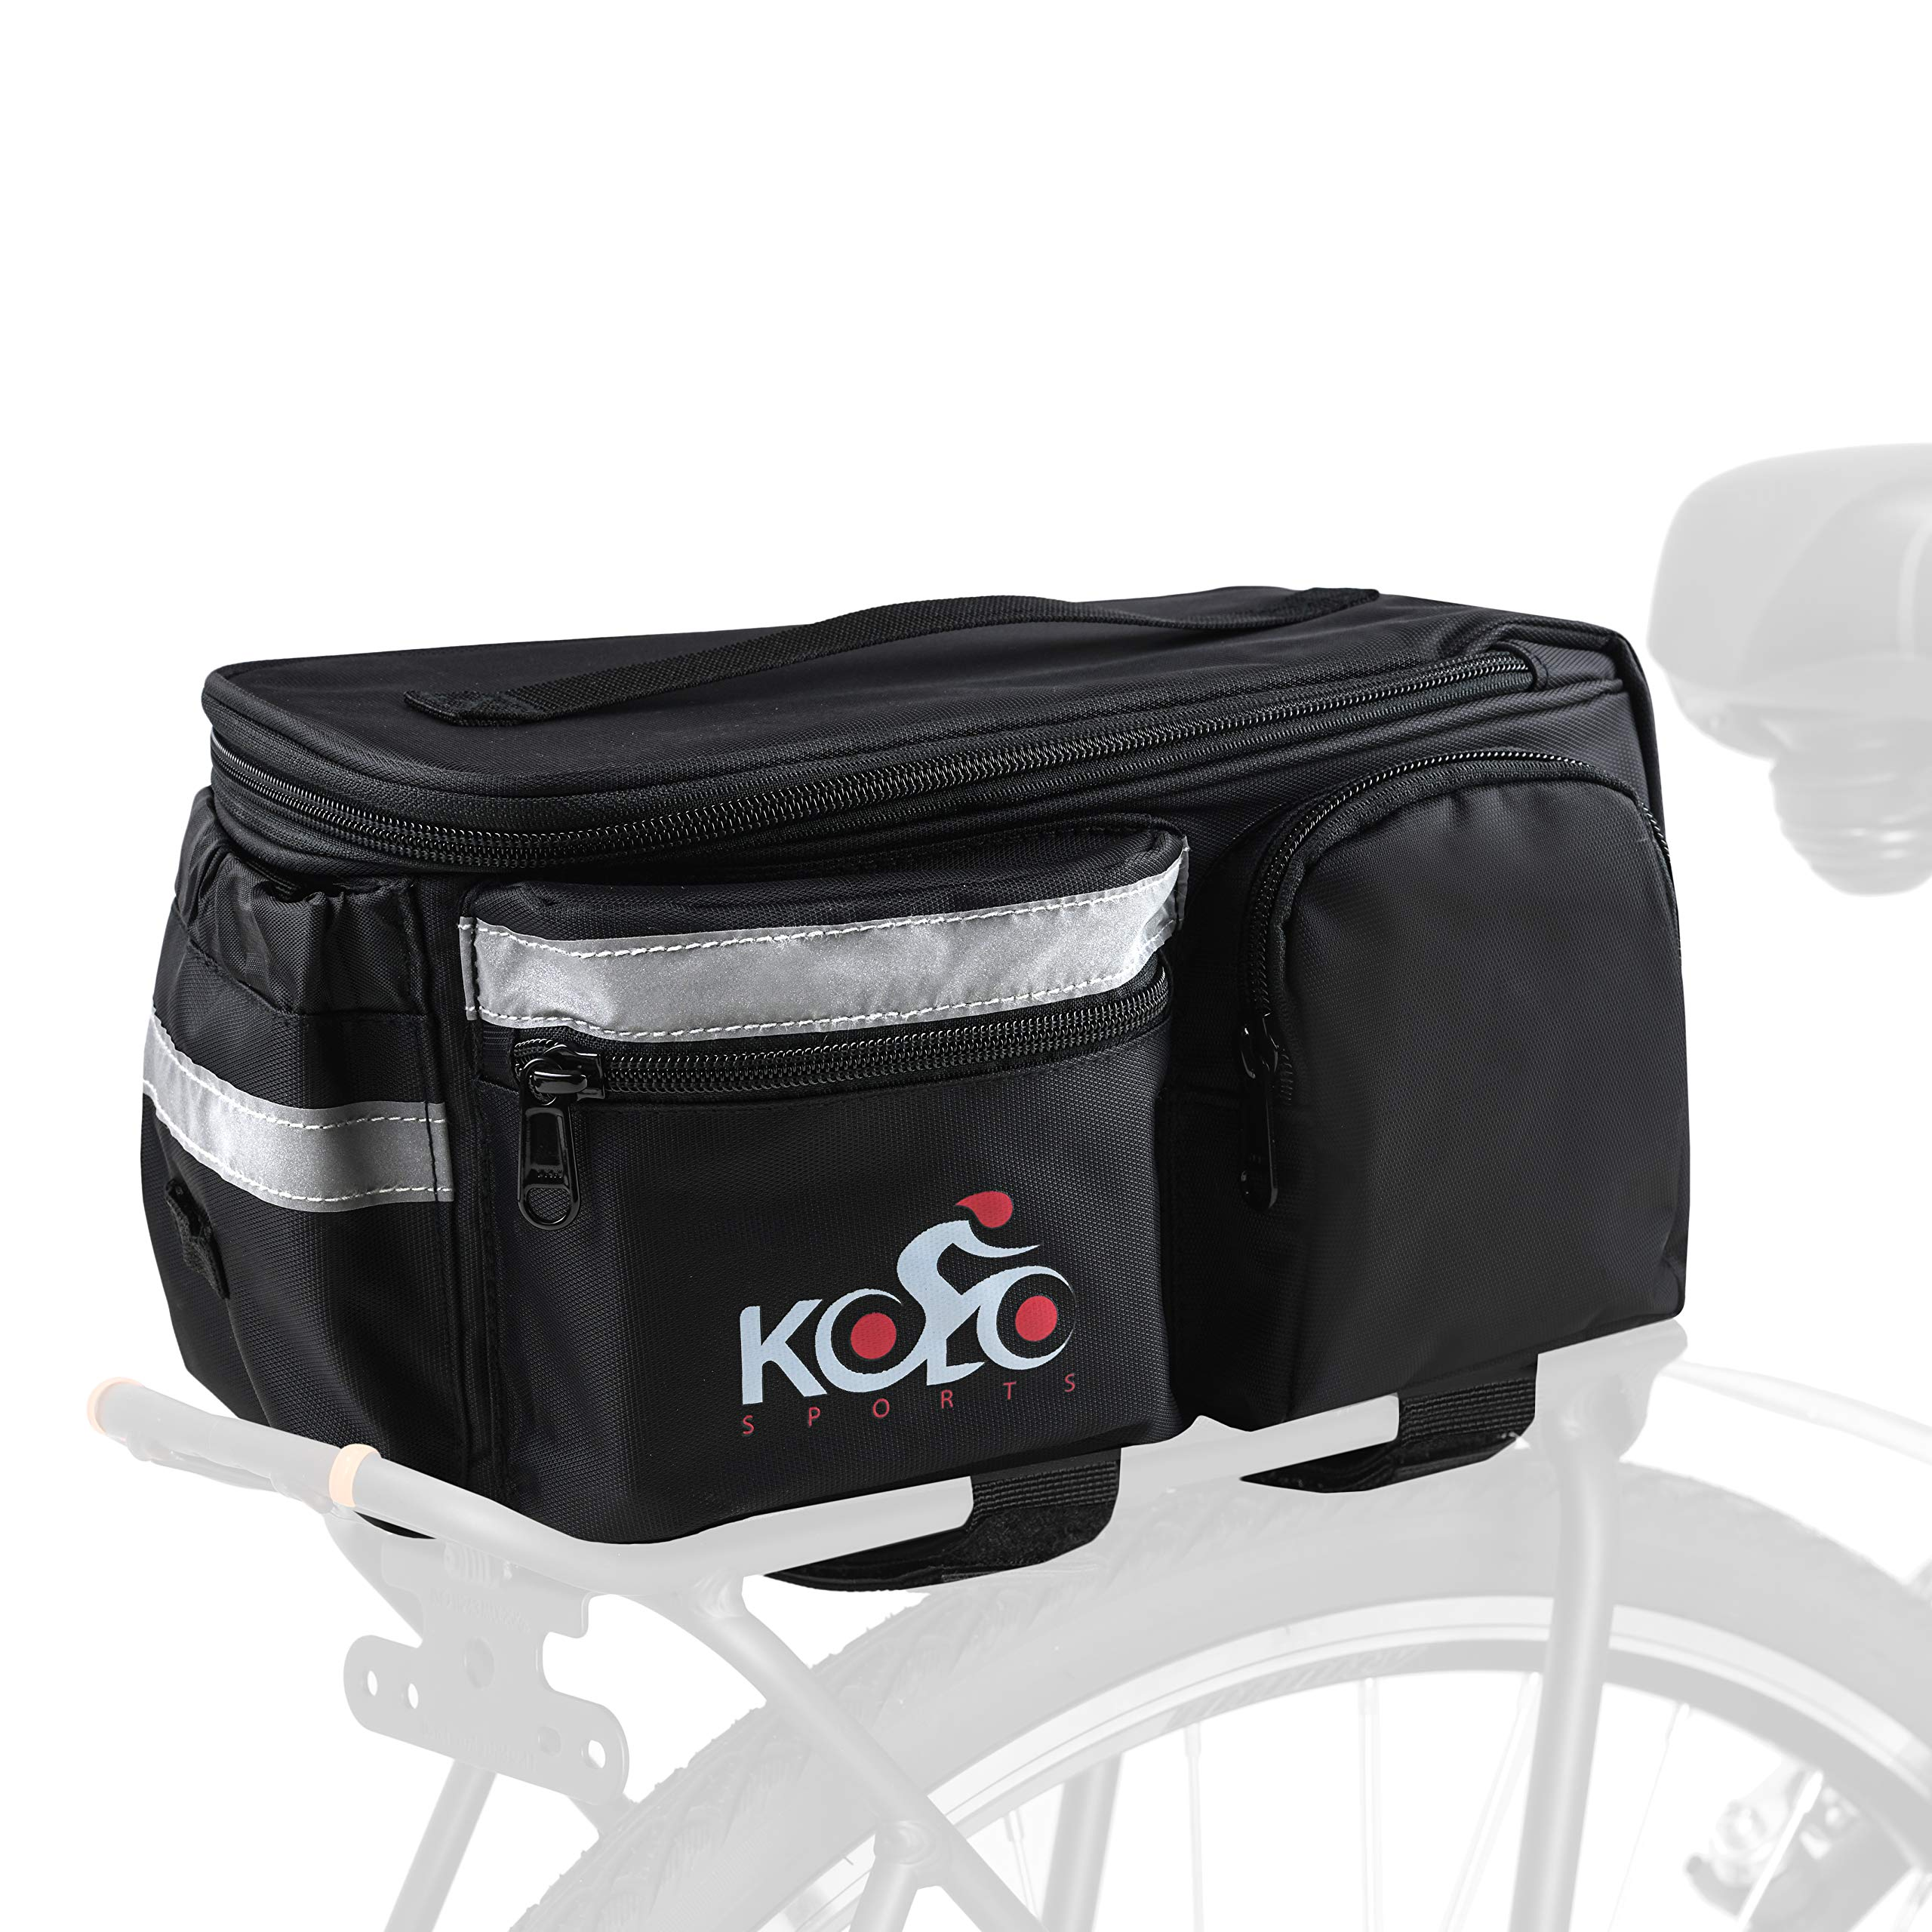 ETC Rack Top Bag for Rear Cycling Pannier Rack Black Great for Bike Touring